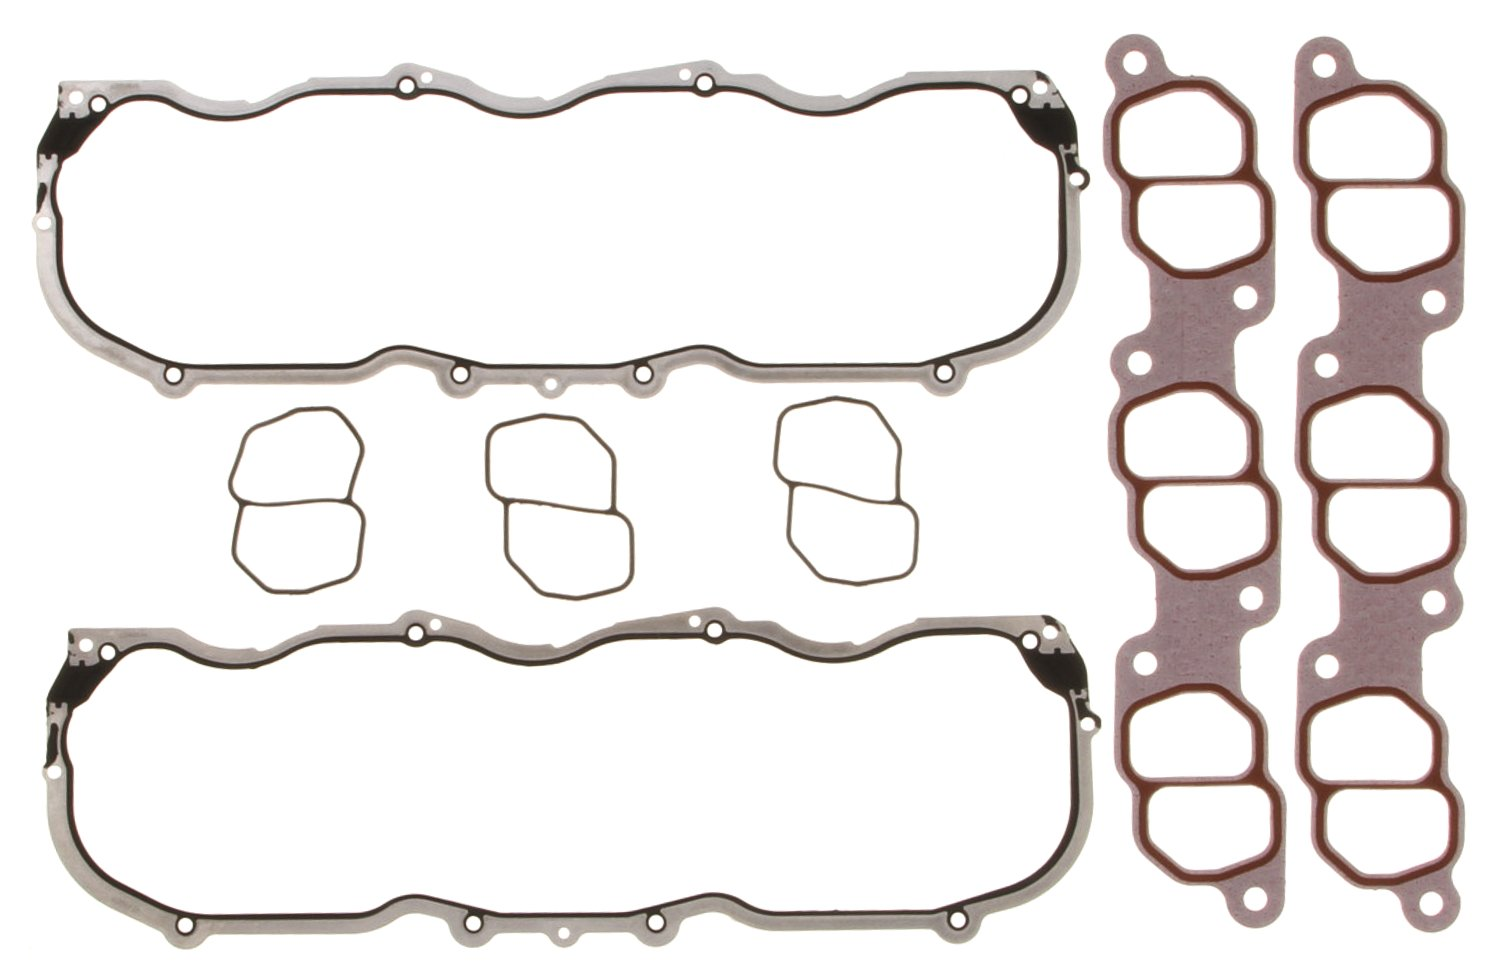 hight resolution of 2000 ford ranger engine valve cover gasket set vg vs50209